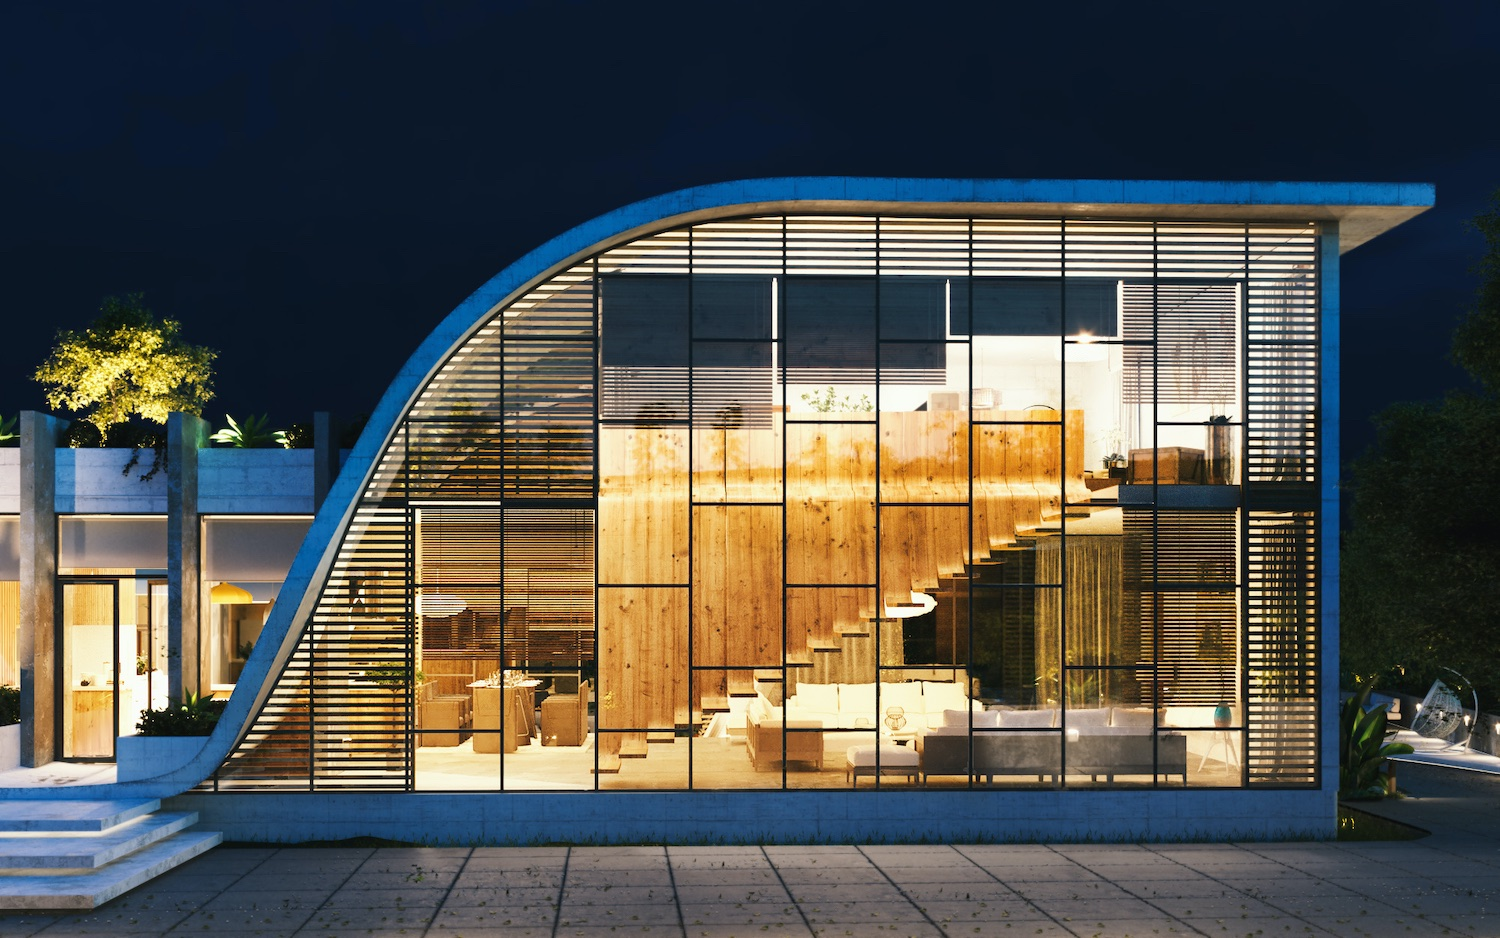 curvy facade with large windows let you to see the interior